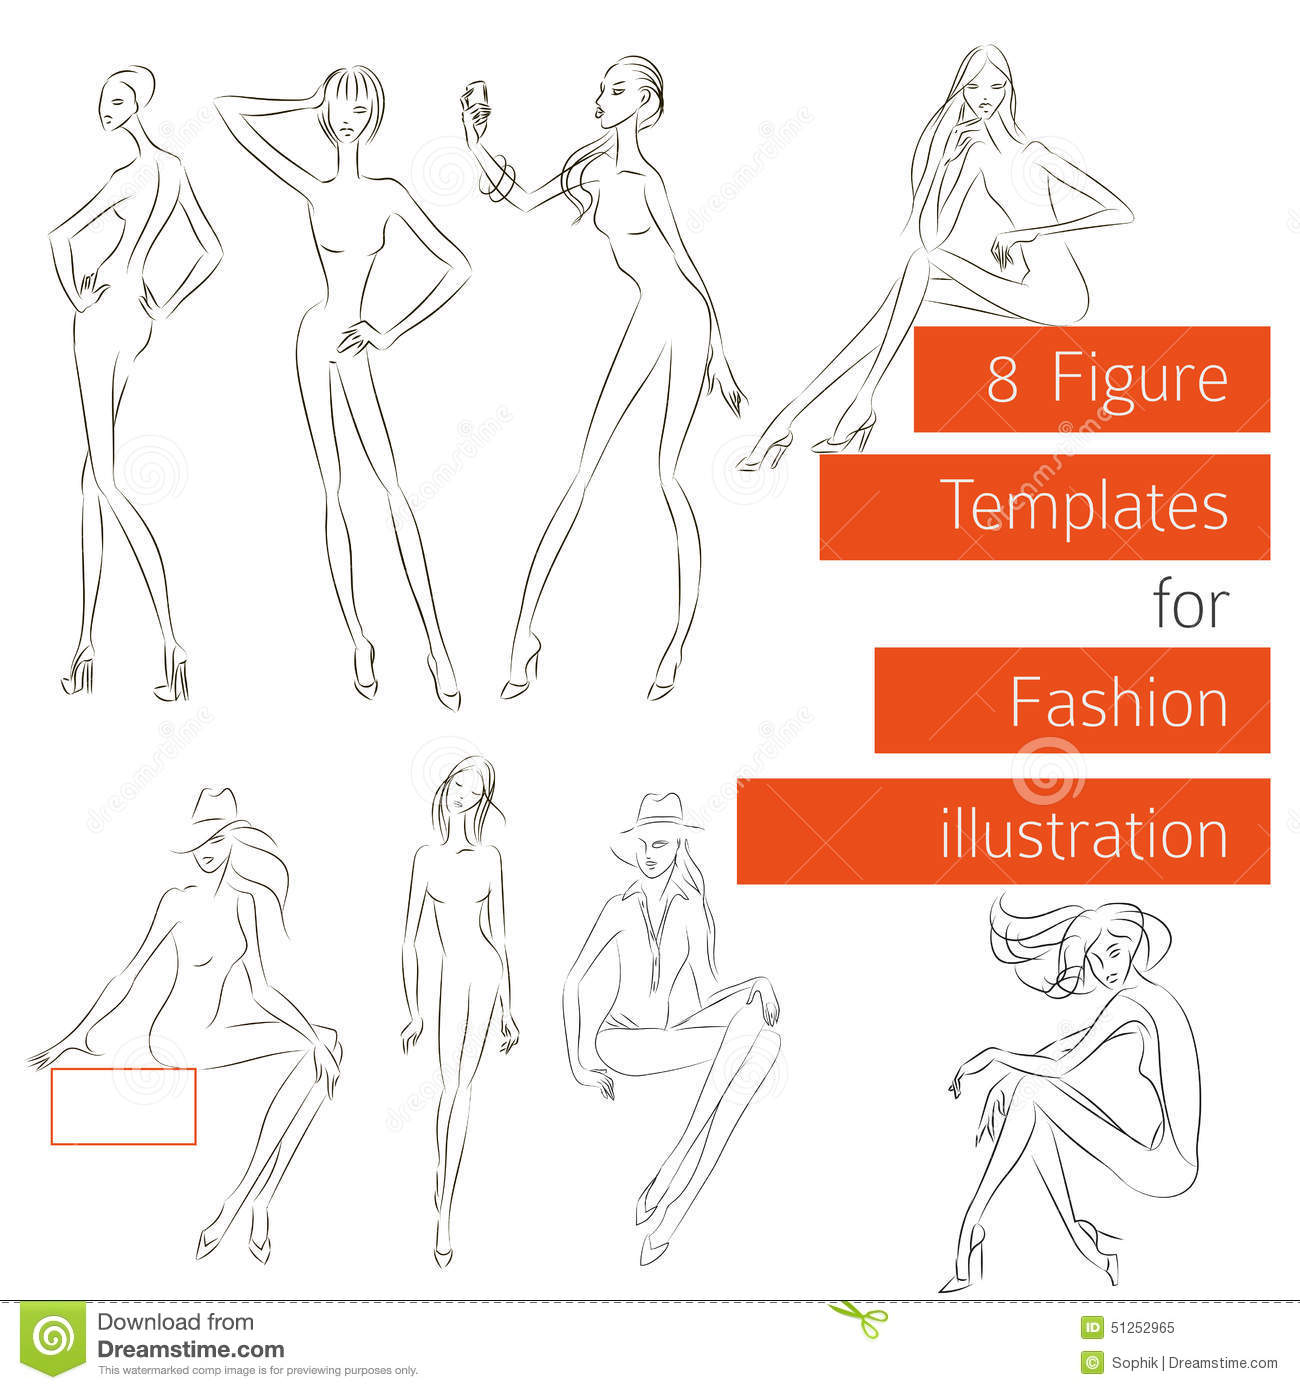 fashion designing templates free download - figure templates for fashion illustration stock